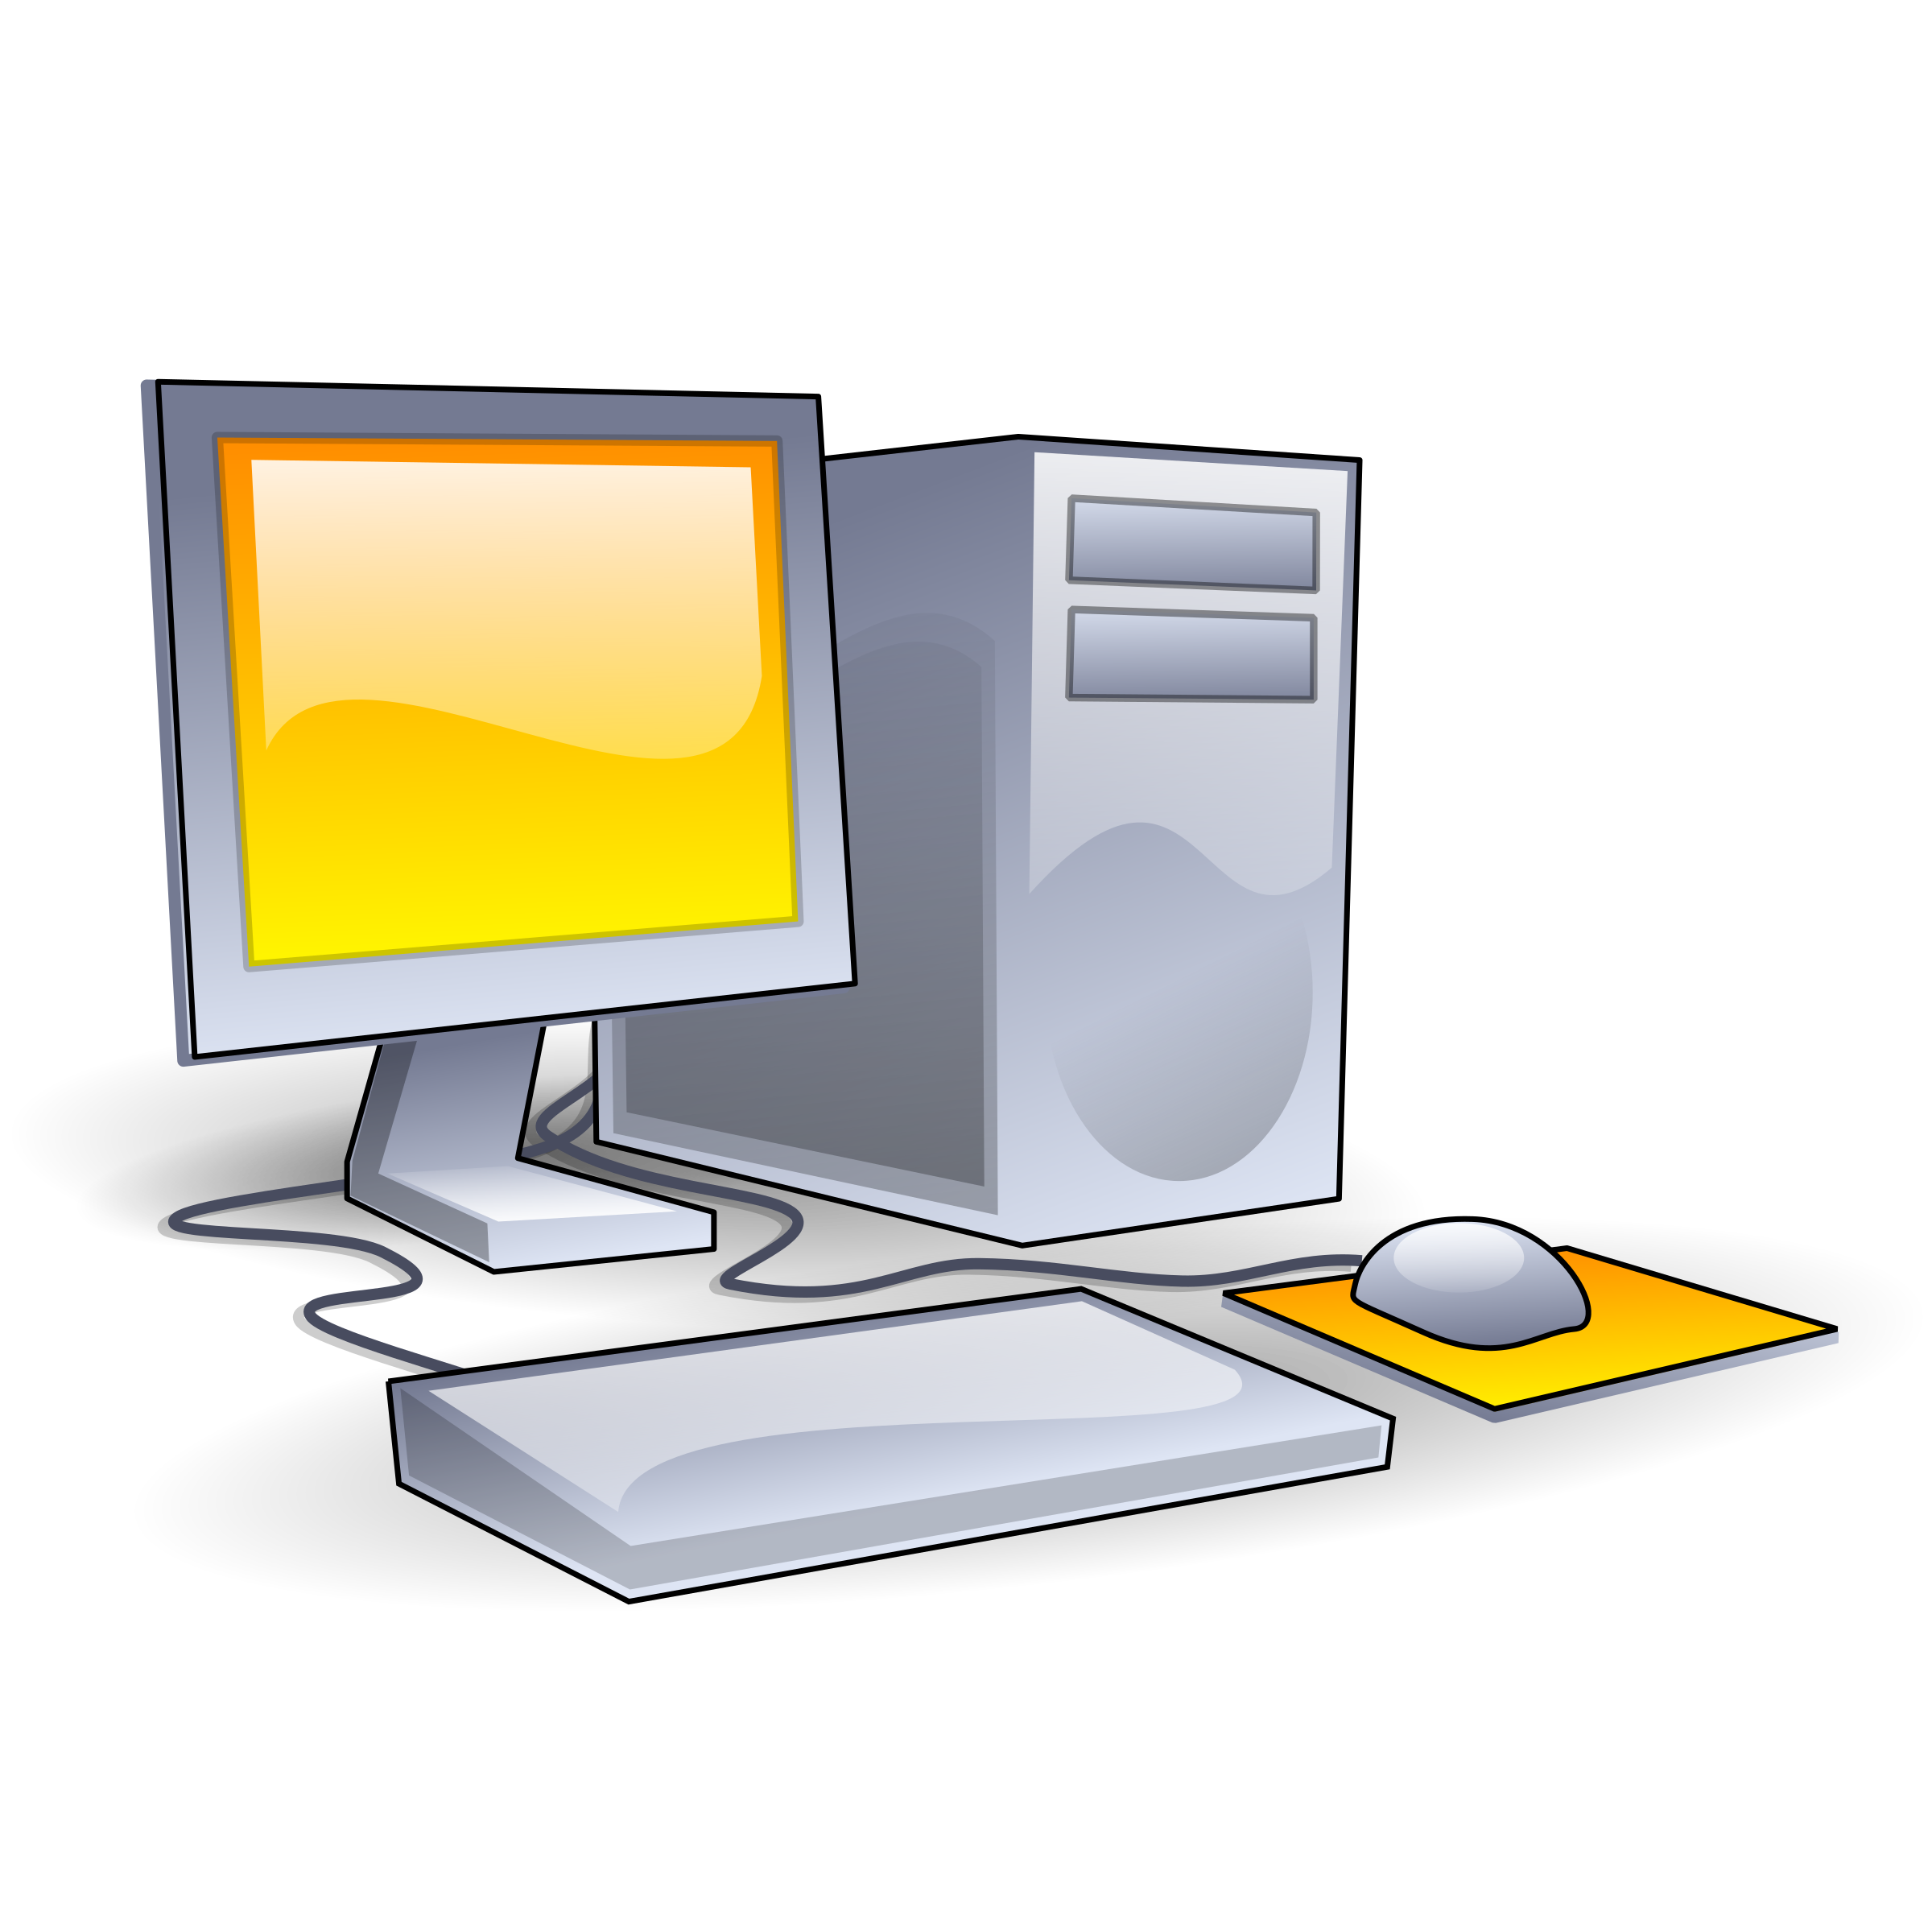 Computer aj ashton big. Pc clipart hardware